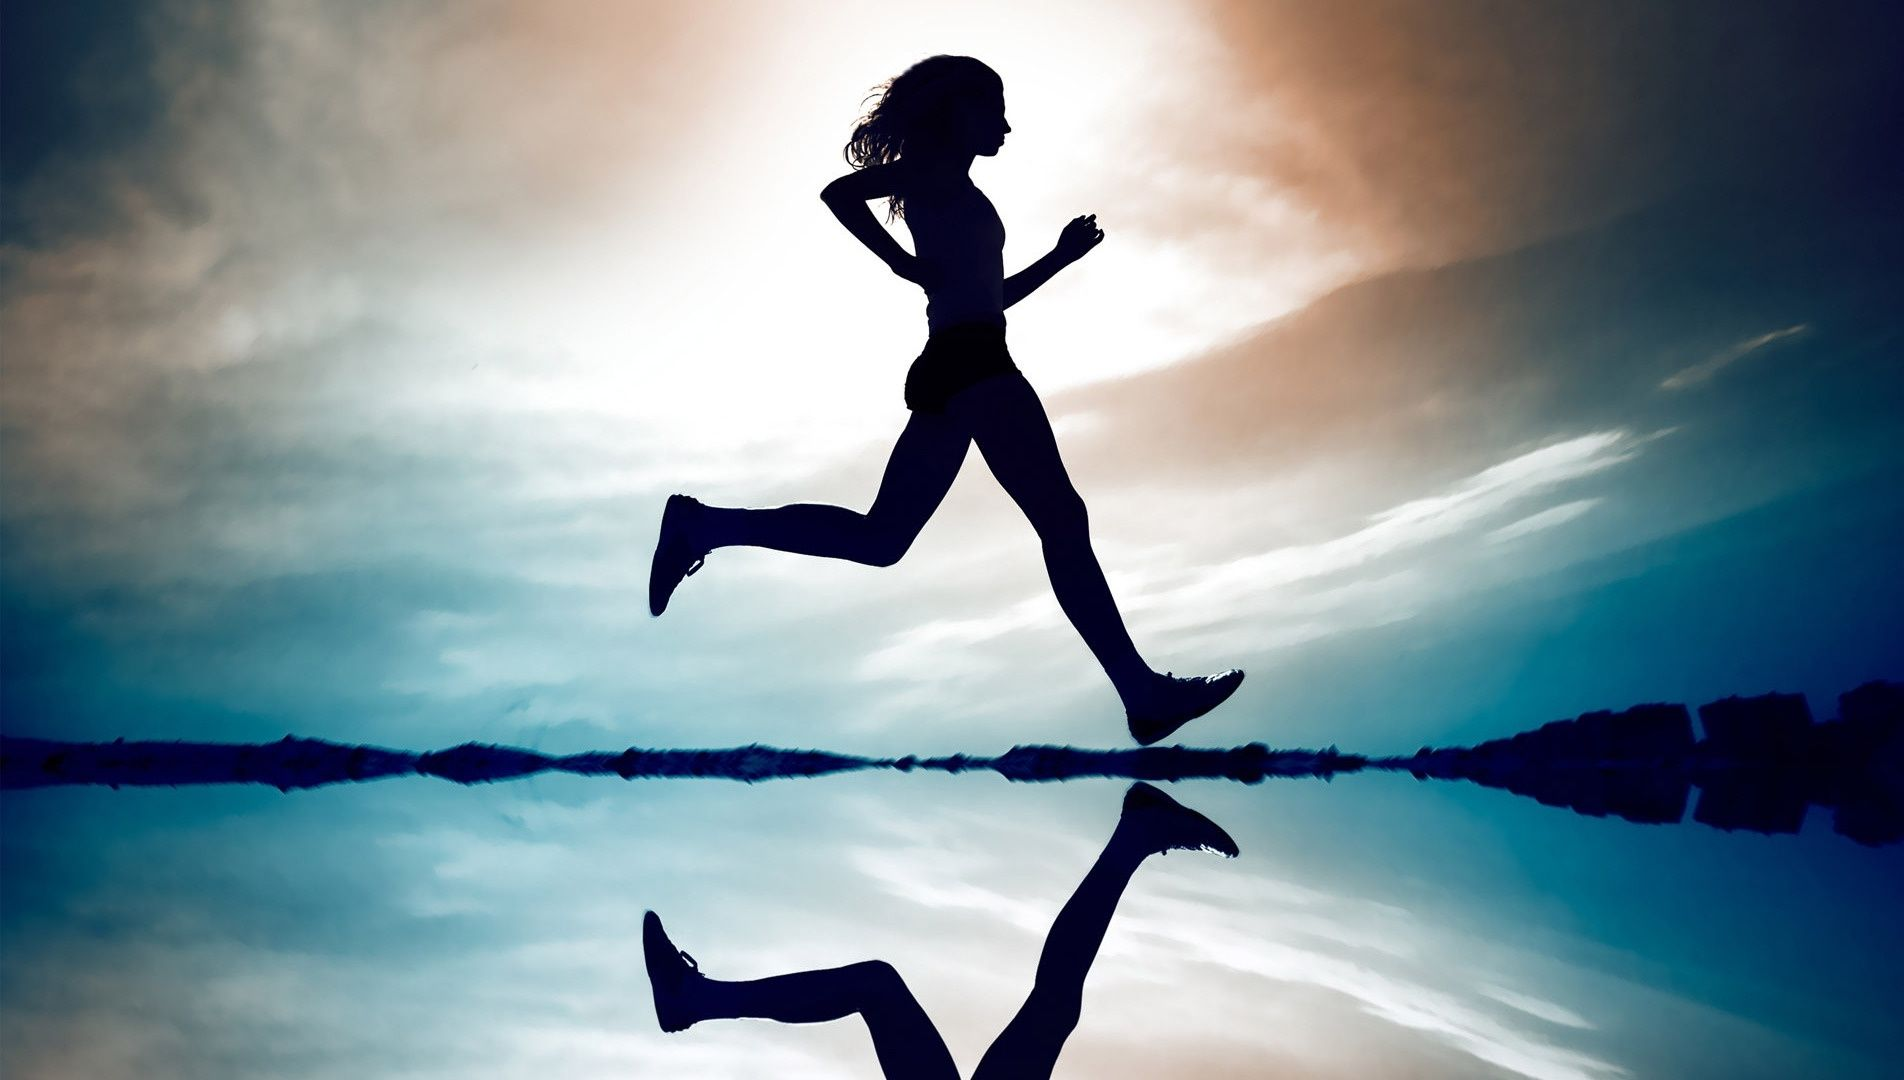 10k Training Plan How To Run Longer Cross Country Running Friday Workout